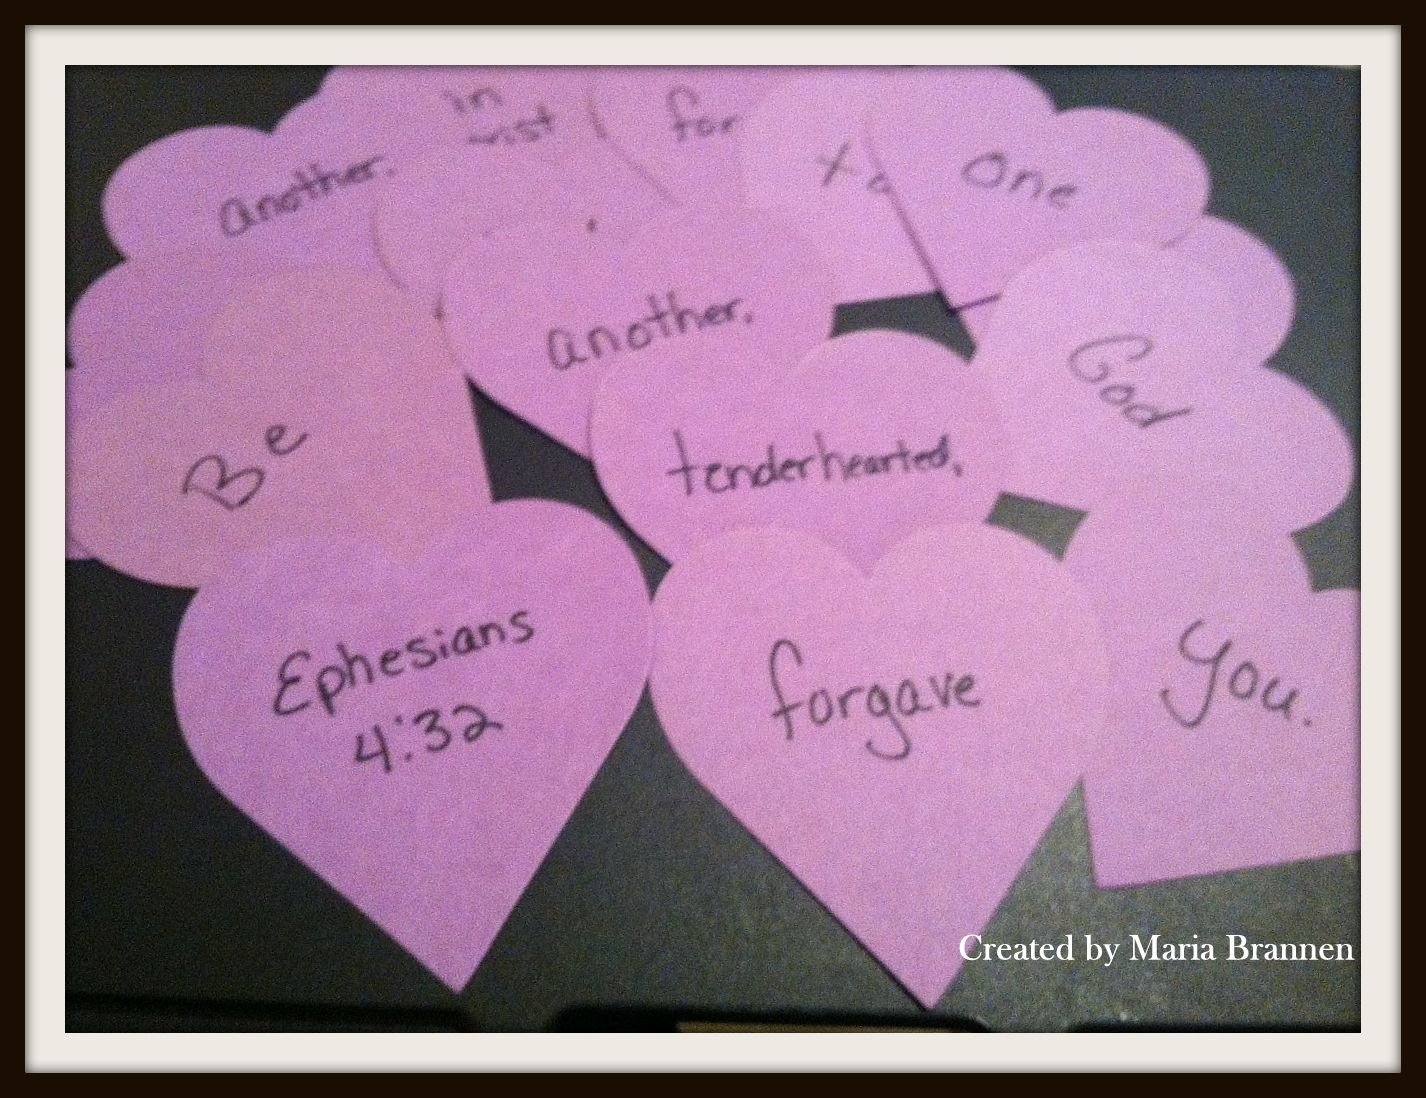 Ephesians 4:32 activity - Using heart-shapes, write one word per ...